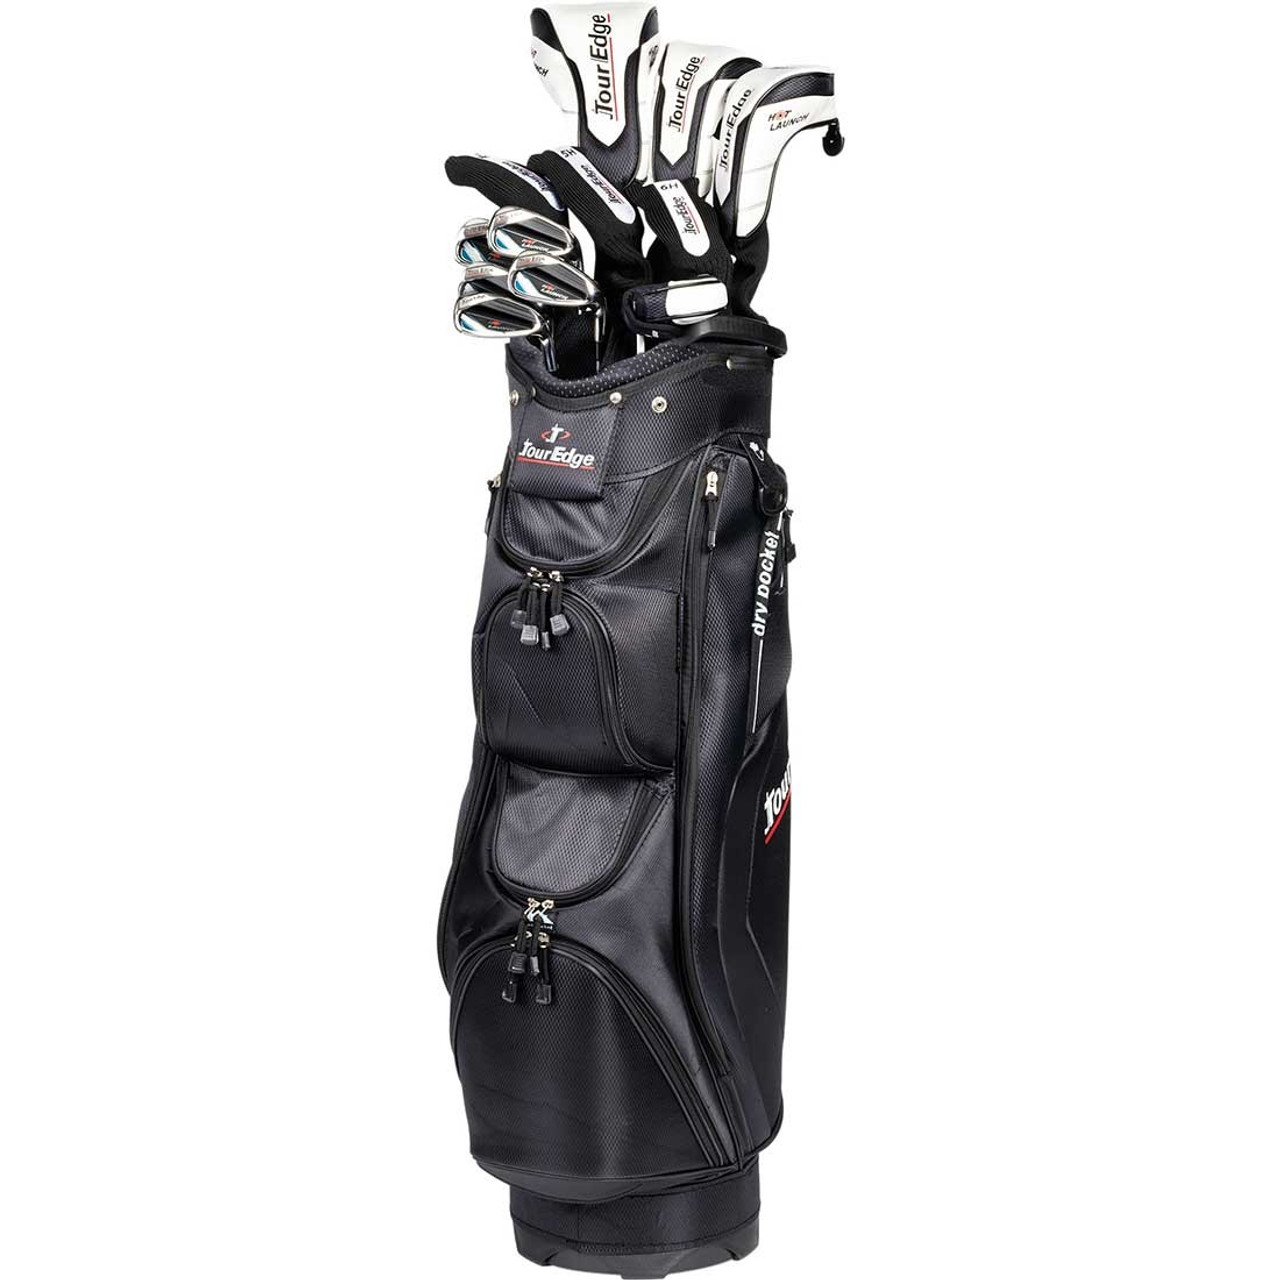 18758809 Tour Edge Hot Launch Progressive Complete Set | Tour Edge Golf